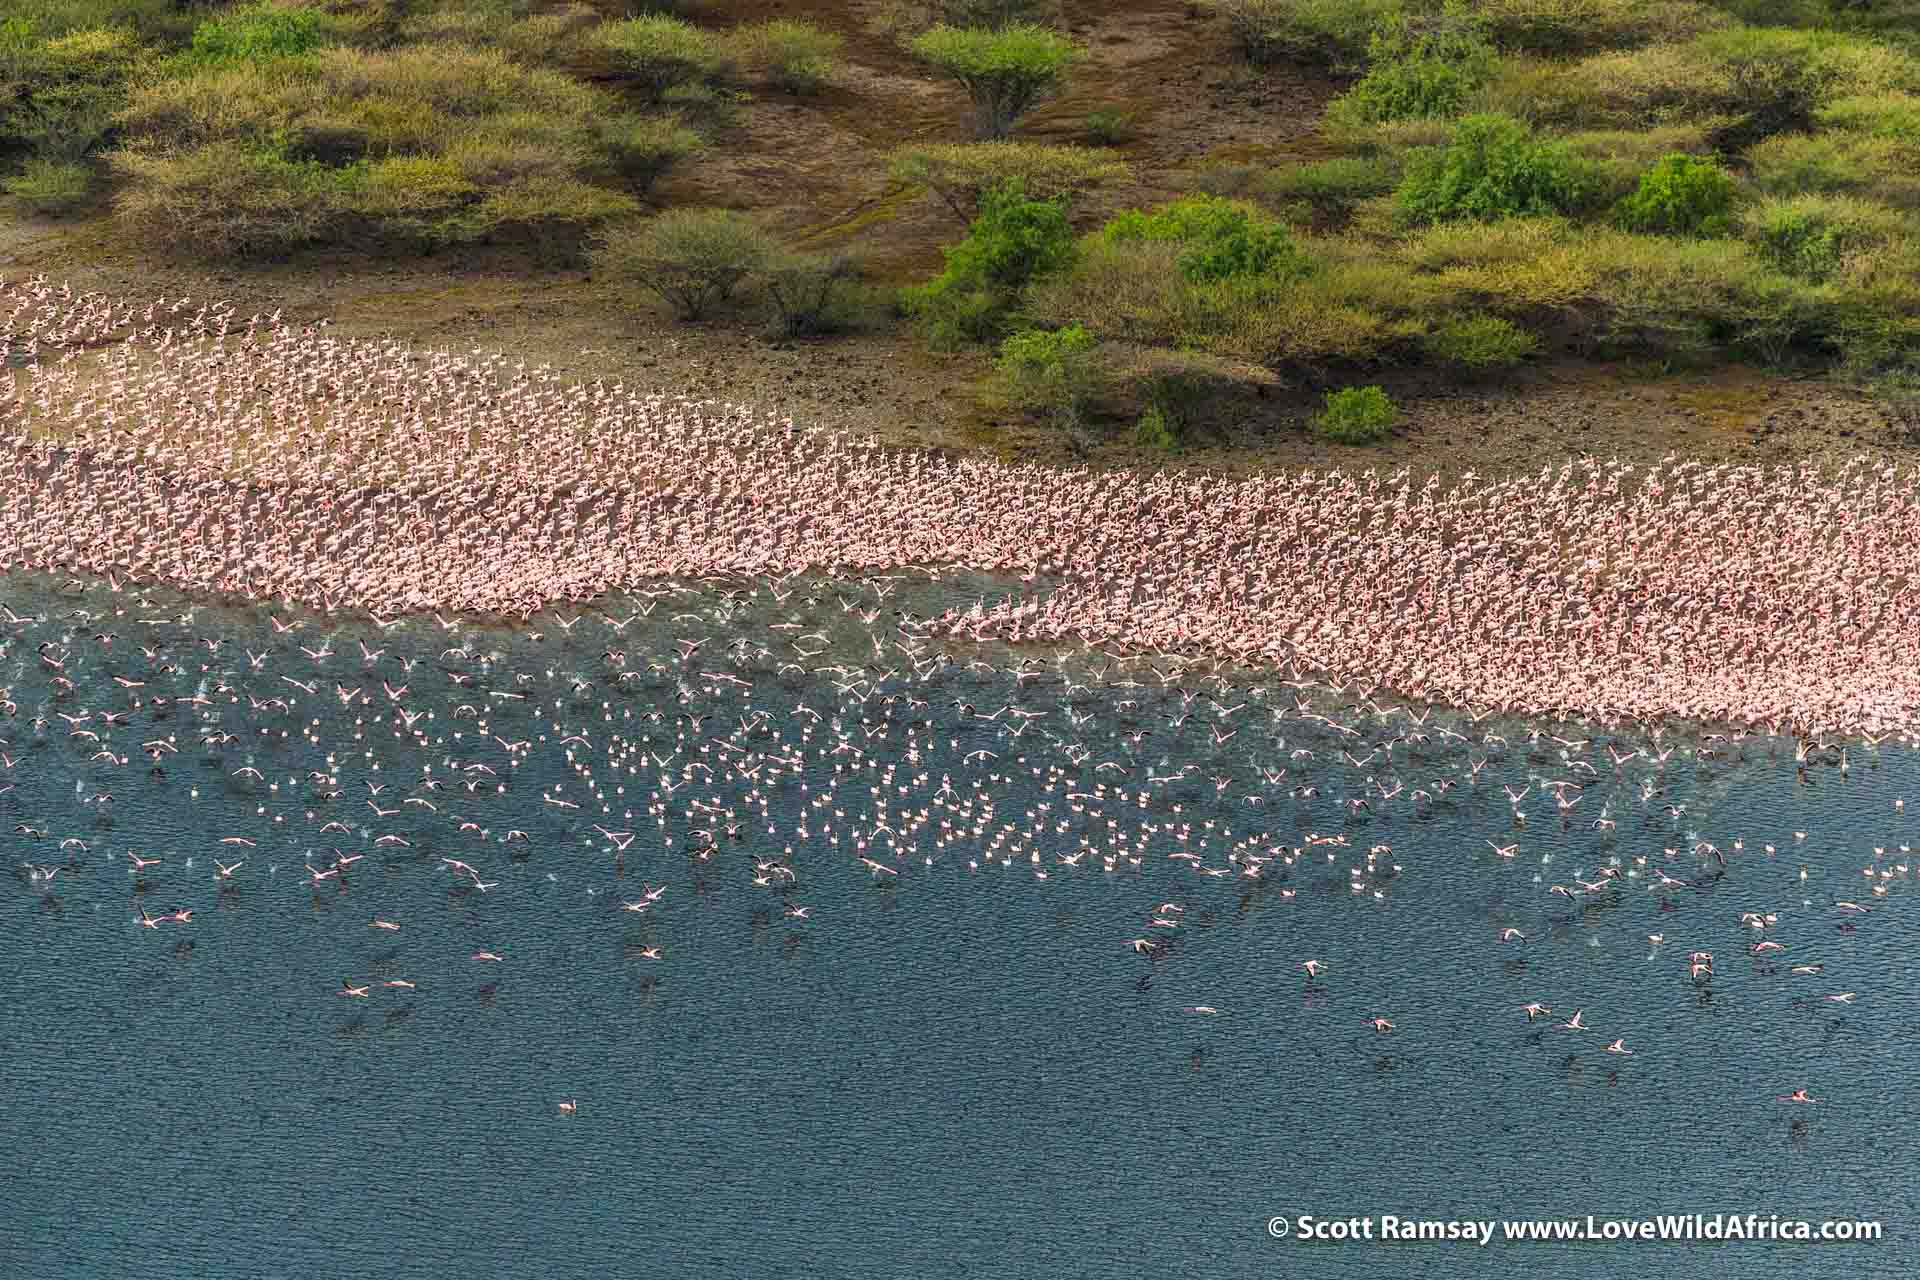 Closer up to the lesser flamingos...Lake Bogoria is a key locality for the species, along with Lake Natron in Tanzania. The mass groupings of flamingos provides important advantages...including the calming of waters in the centre of the group, making feeding on the algae easier.